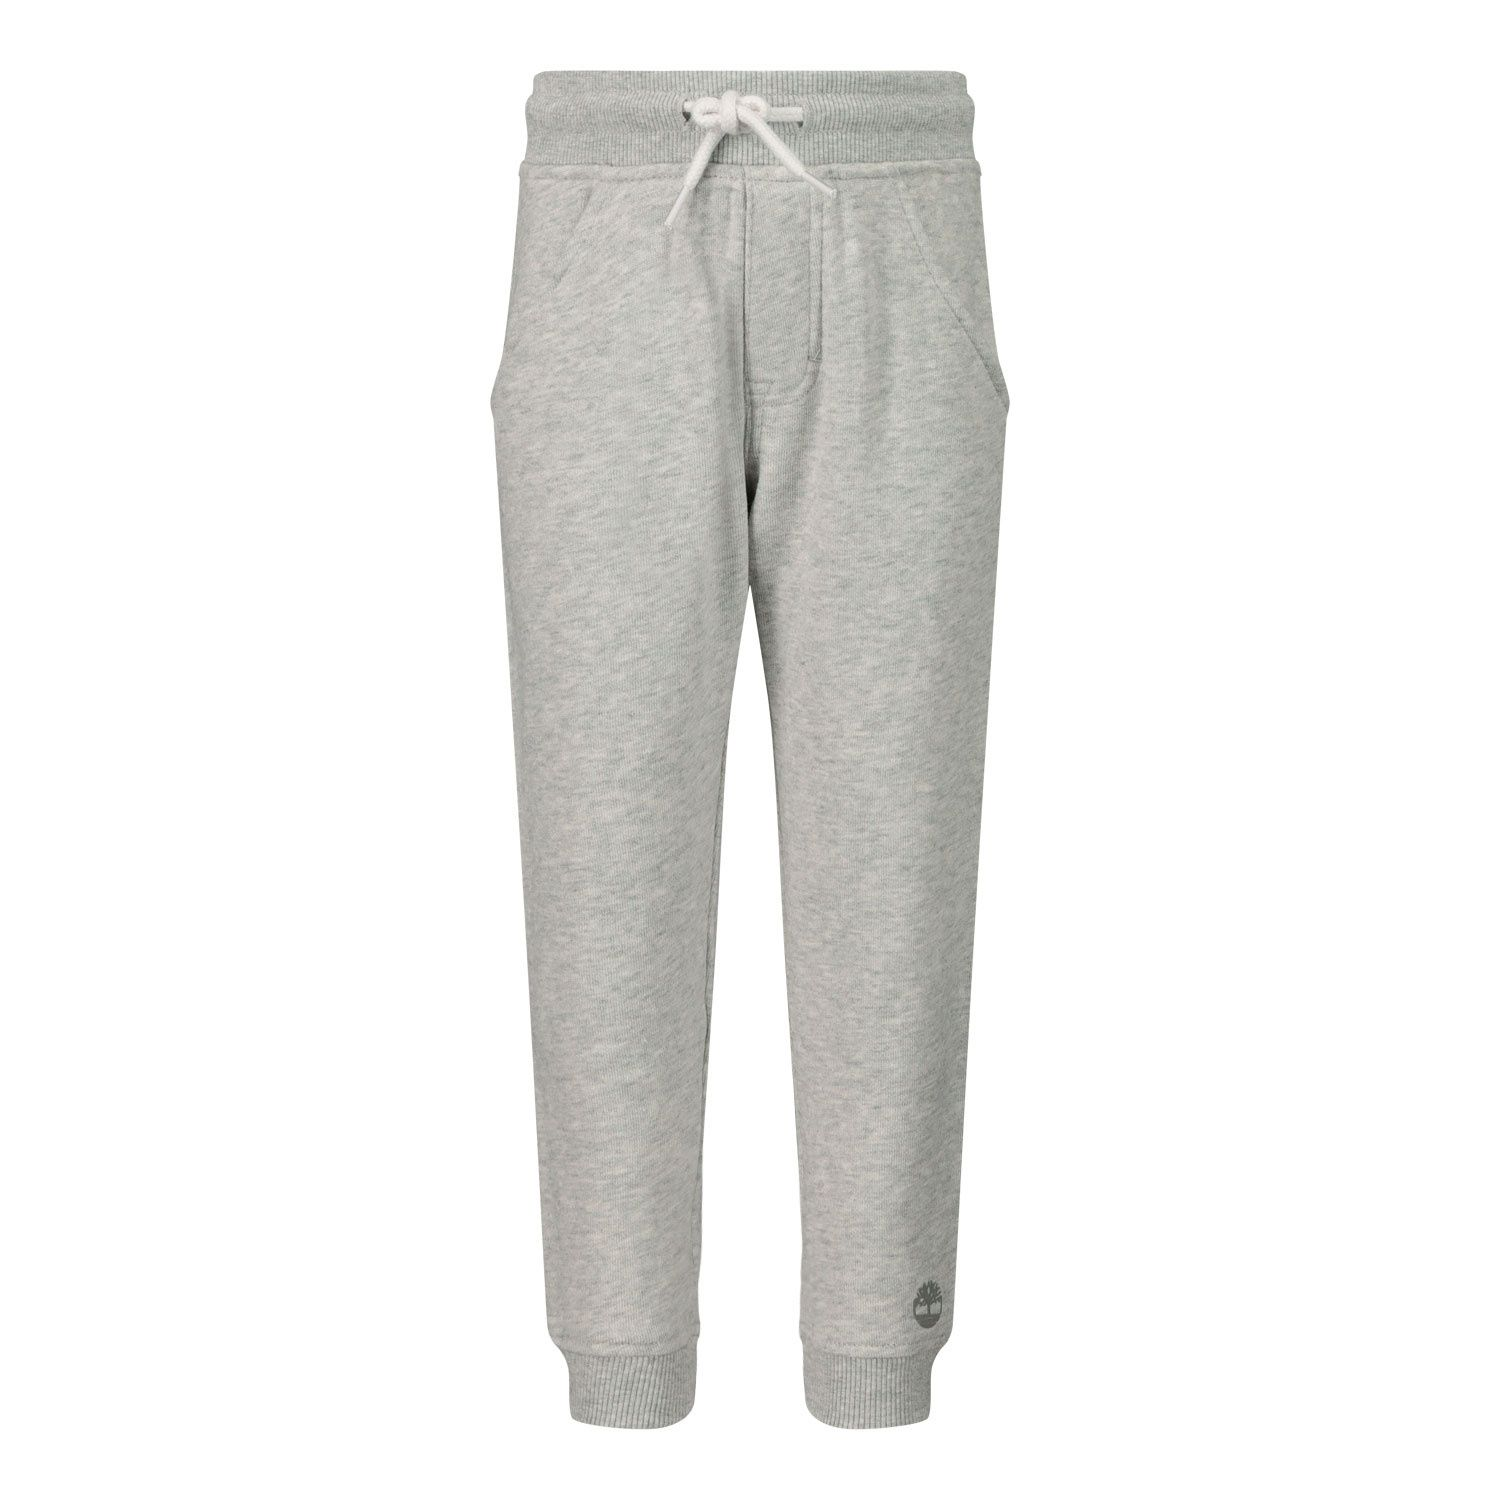 Picture of Timberland T04964 baby pants grey